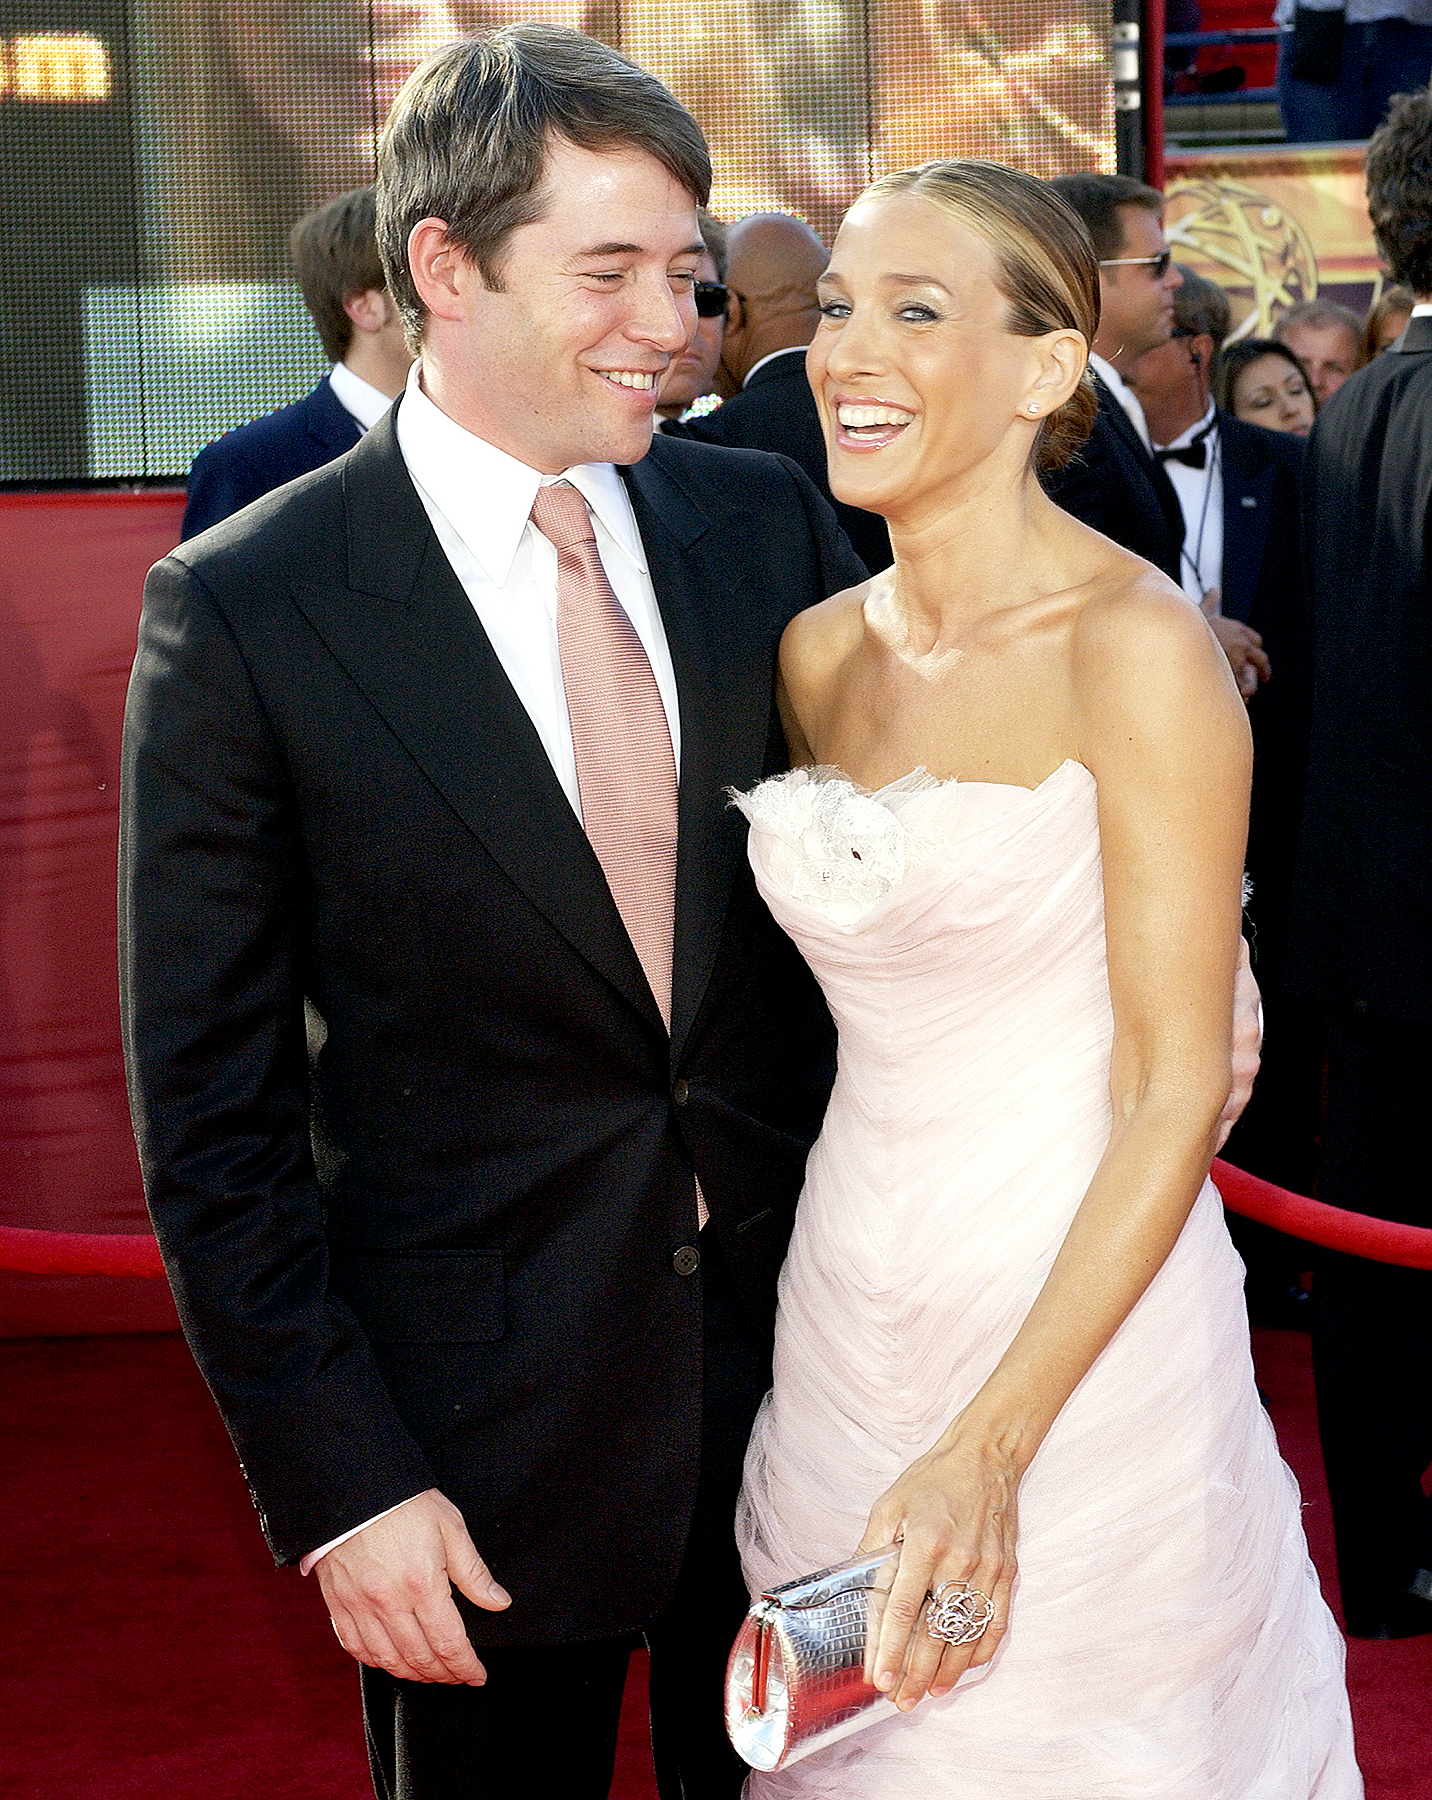 Matthew Broderick and Sarah Jessica Parker during The 55th Annual Primetime Emmy Awards - Arrivals at The Shrine Theater in Los Angeles, California, United States in 2003.